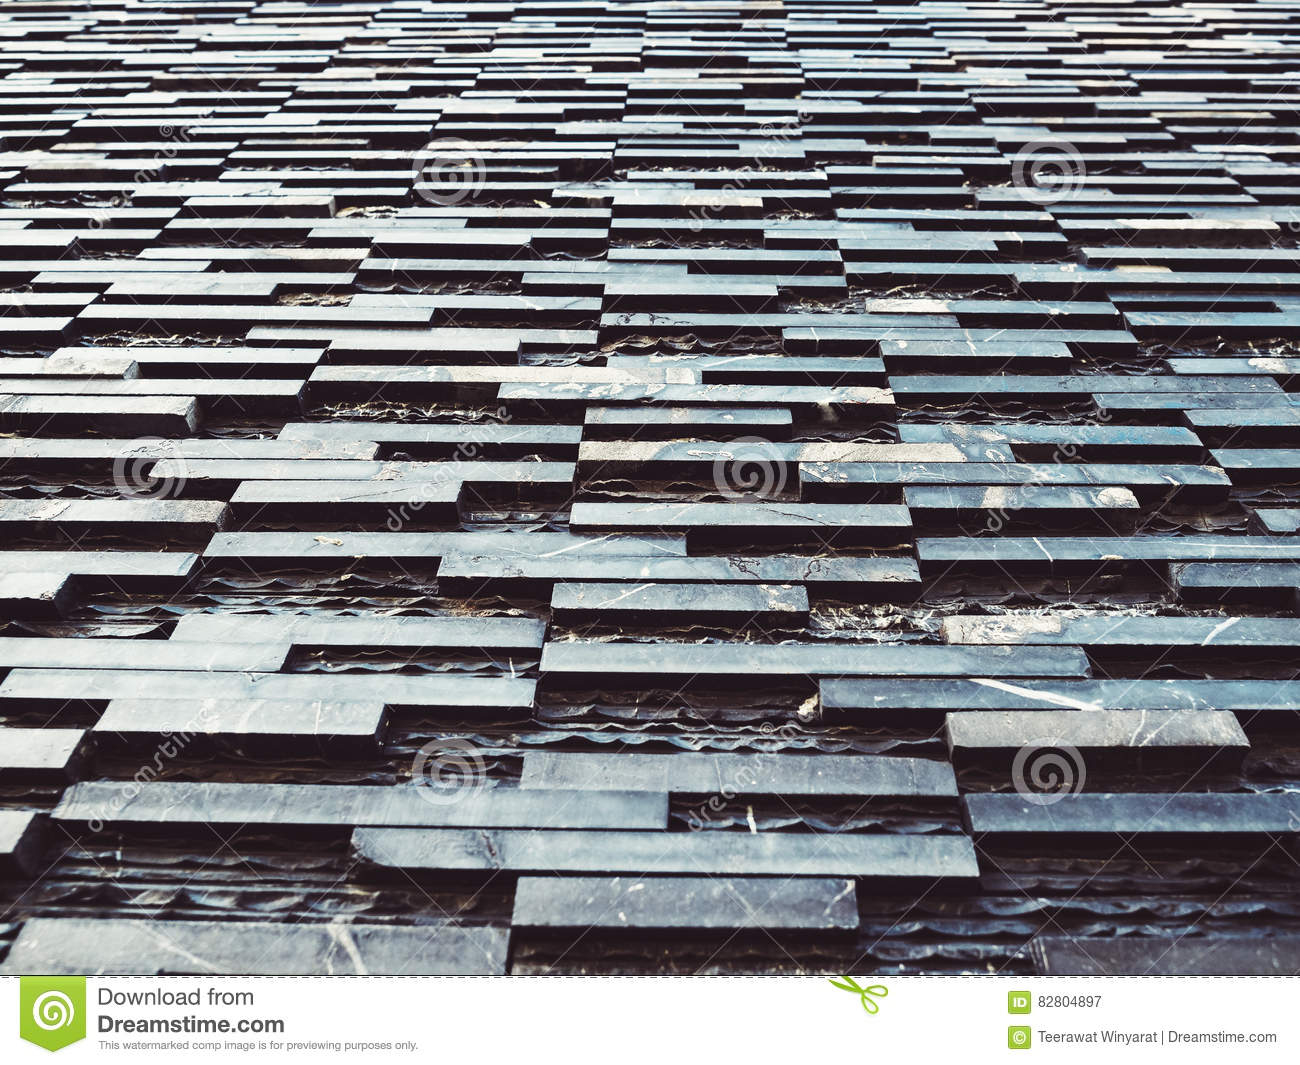 Black Slate Wall Tile Background Architecture Detail Stock Image ...